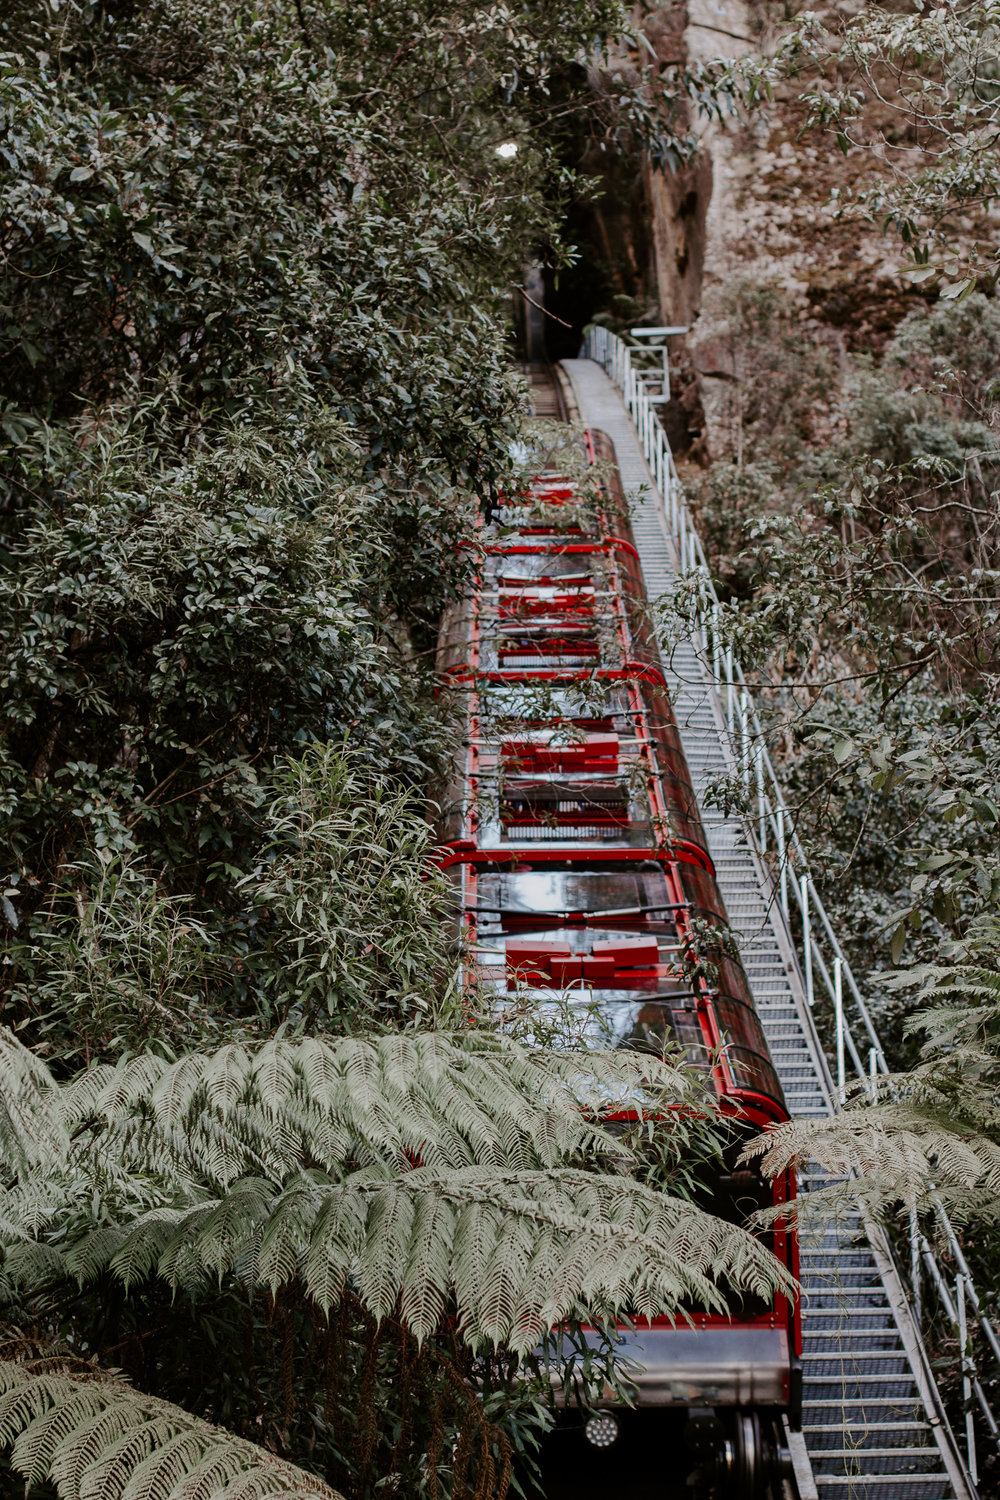 The  Scenic Railway  is the steepest railway in the World! At the top of the railway is a food court with a coffee shop and gift shop, but at the bottom, you can get off and explore this portion of the national park. There are several hiking trails to go on depending on how long you want to stay there. This ride is so fun—just make sure to hold onto all of your belongings hahha